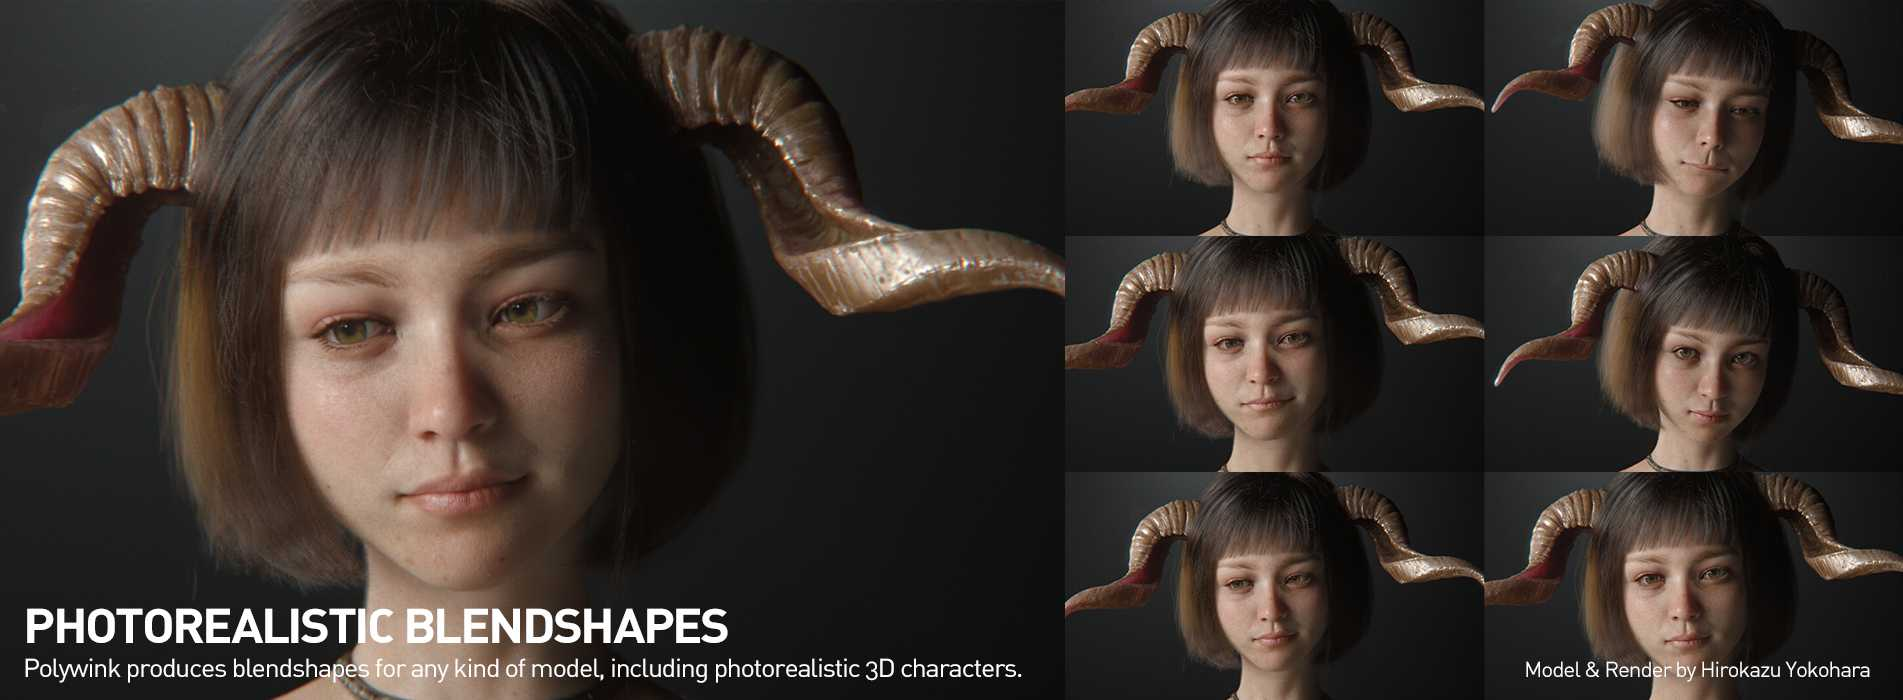 Polywink Blendshapes for Photorealistic Models